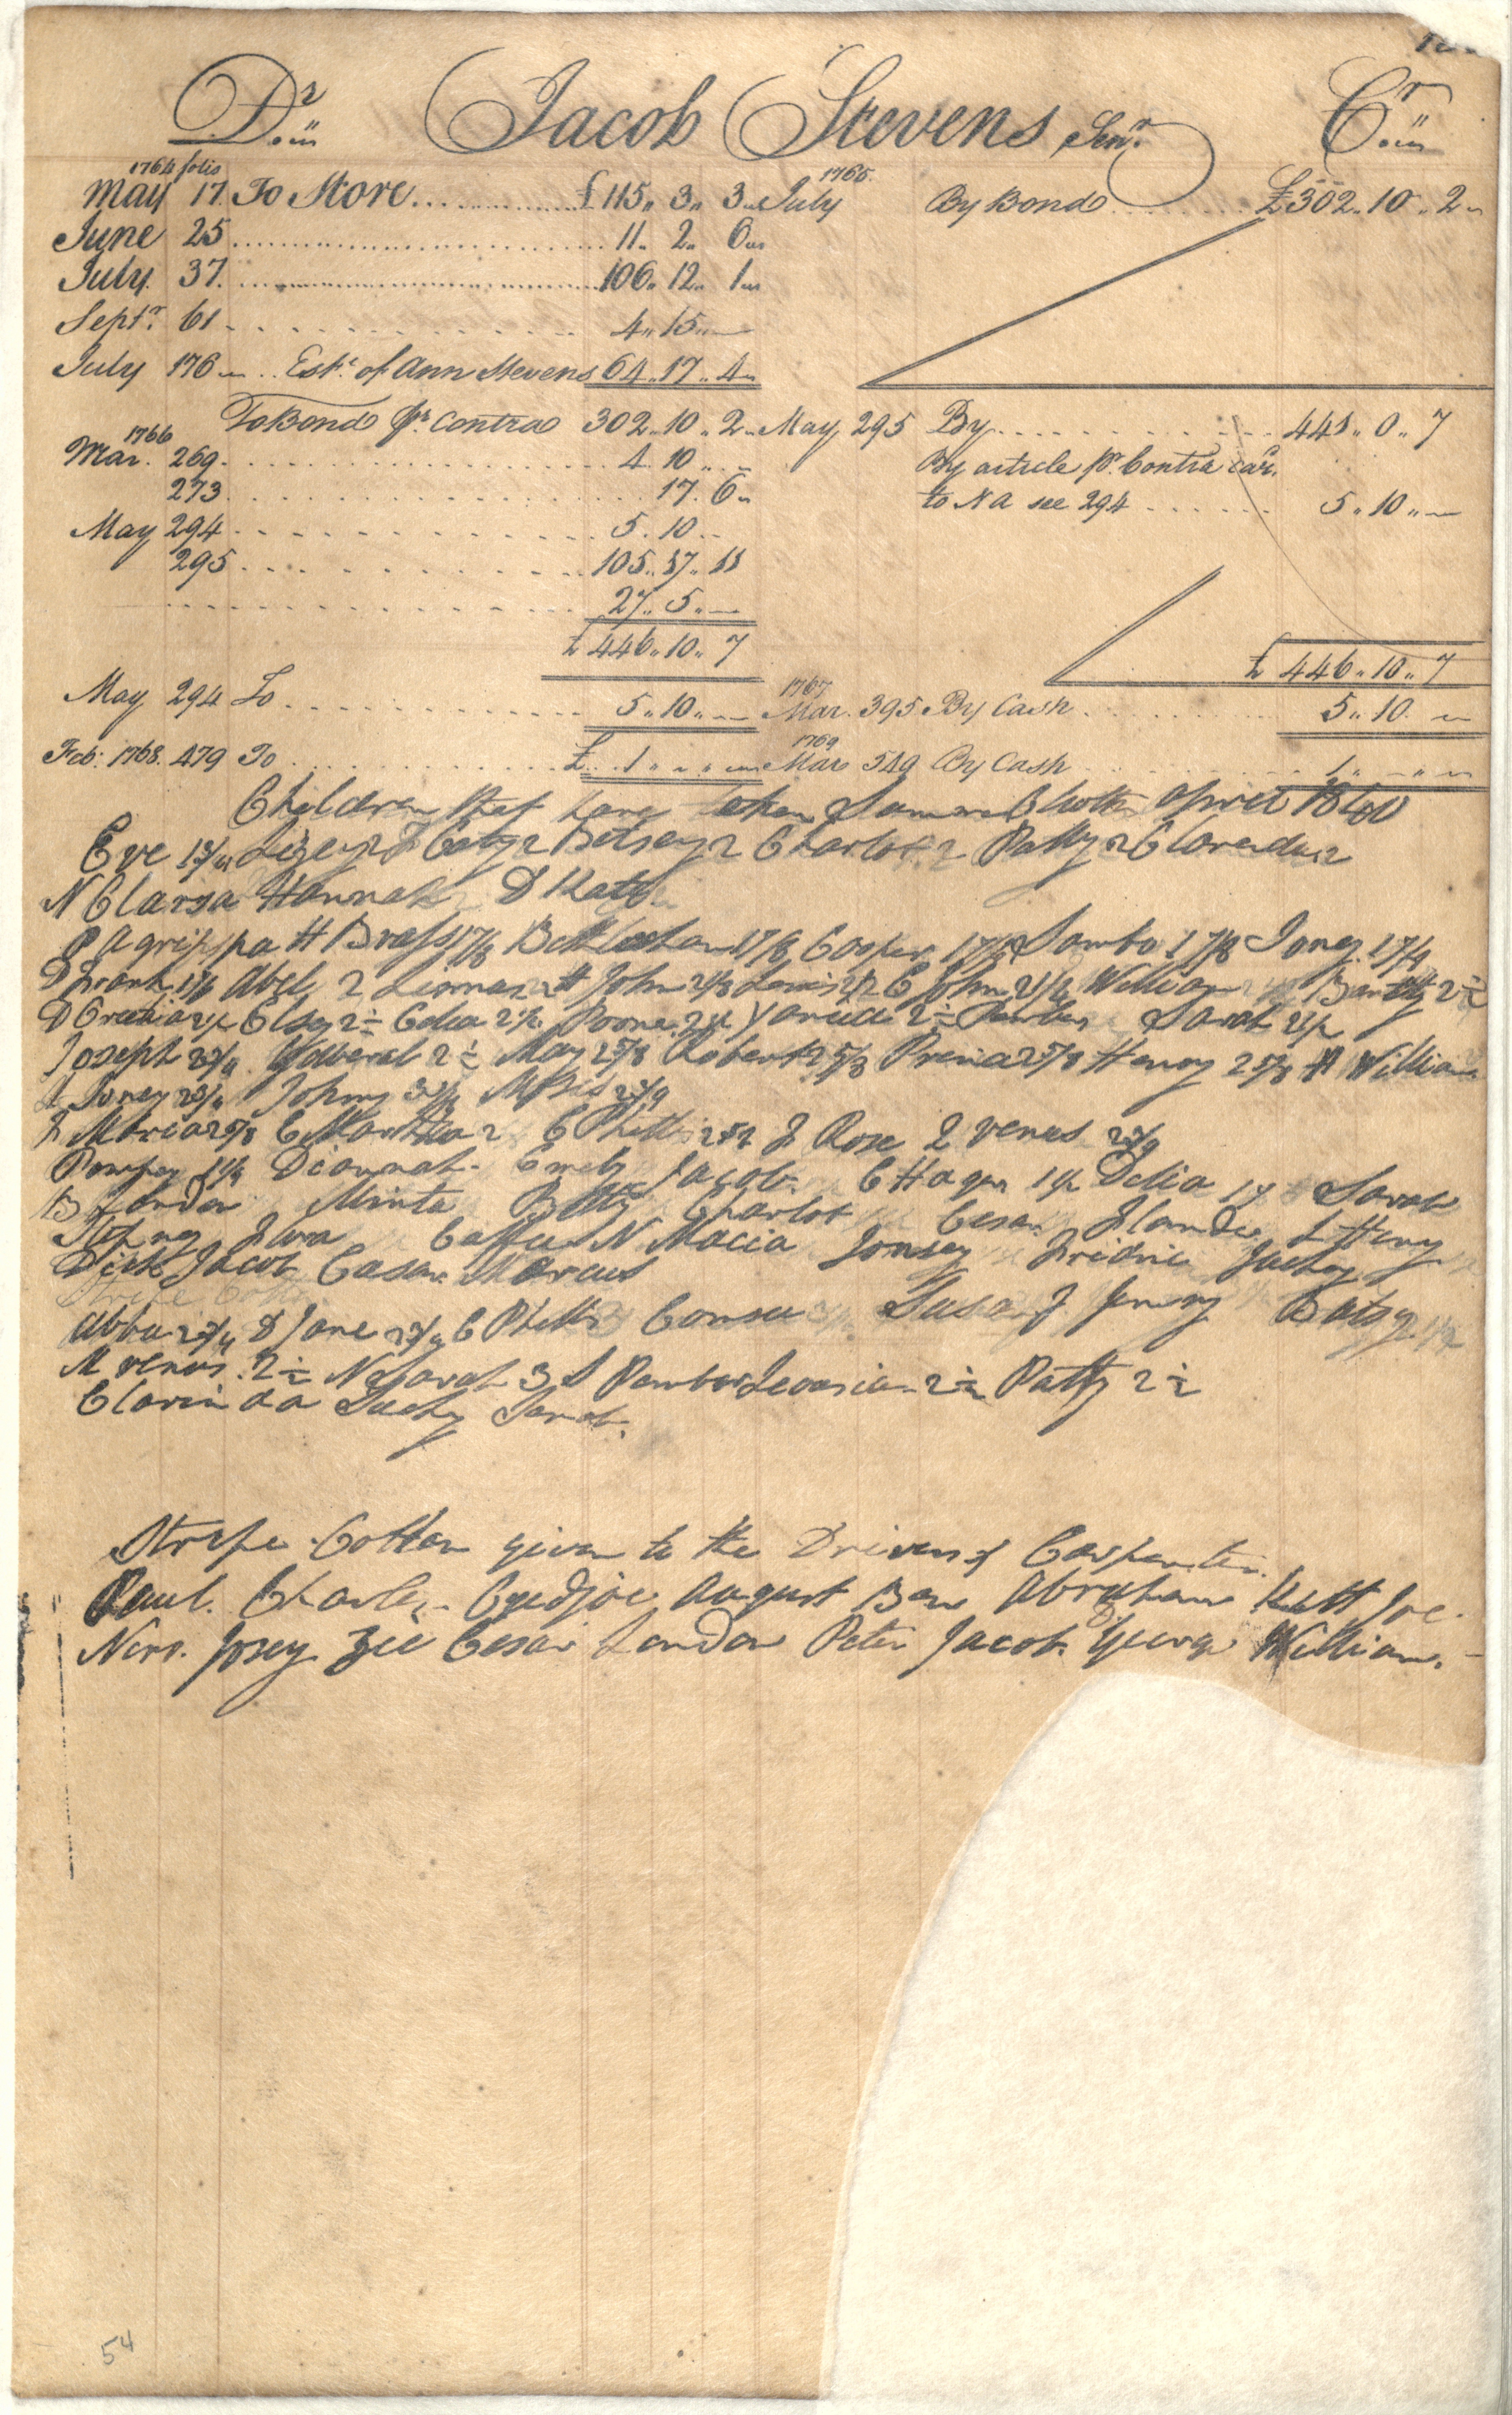 Plowden Weston's Business Ledger, page 130